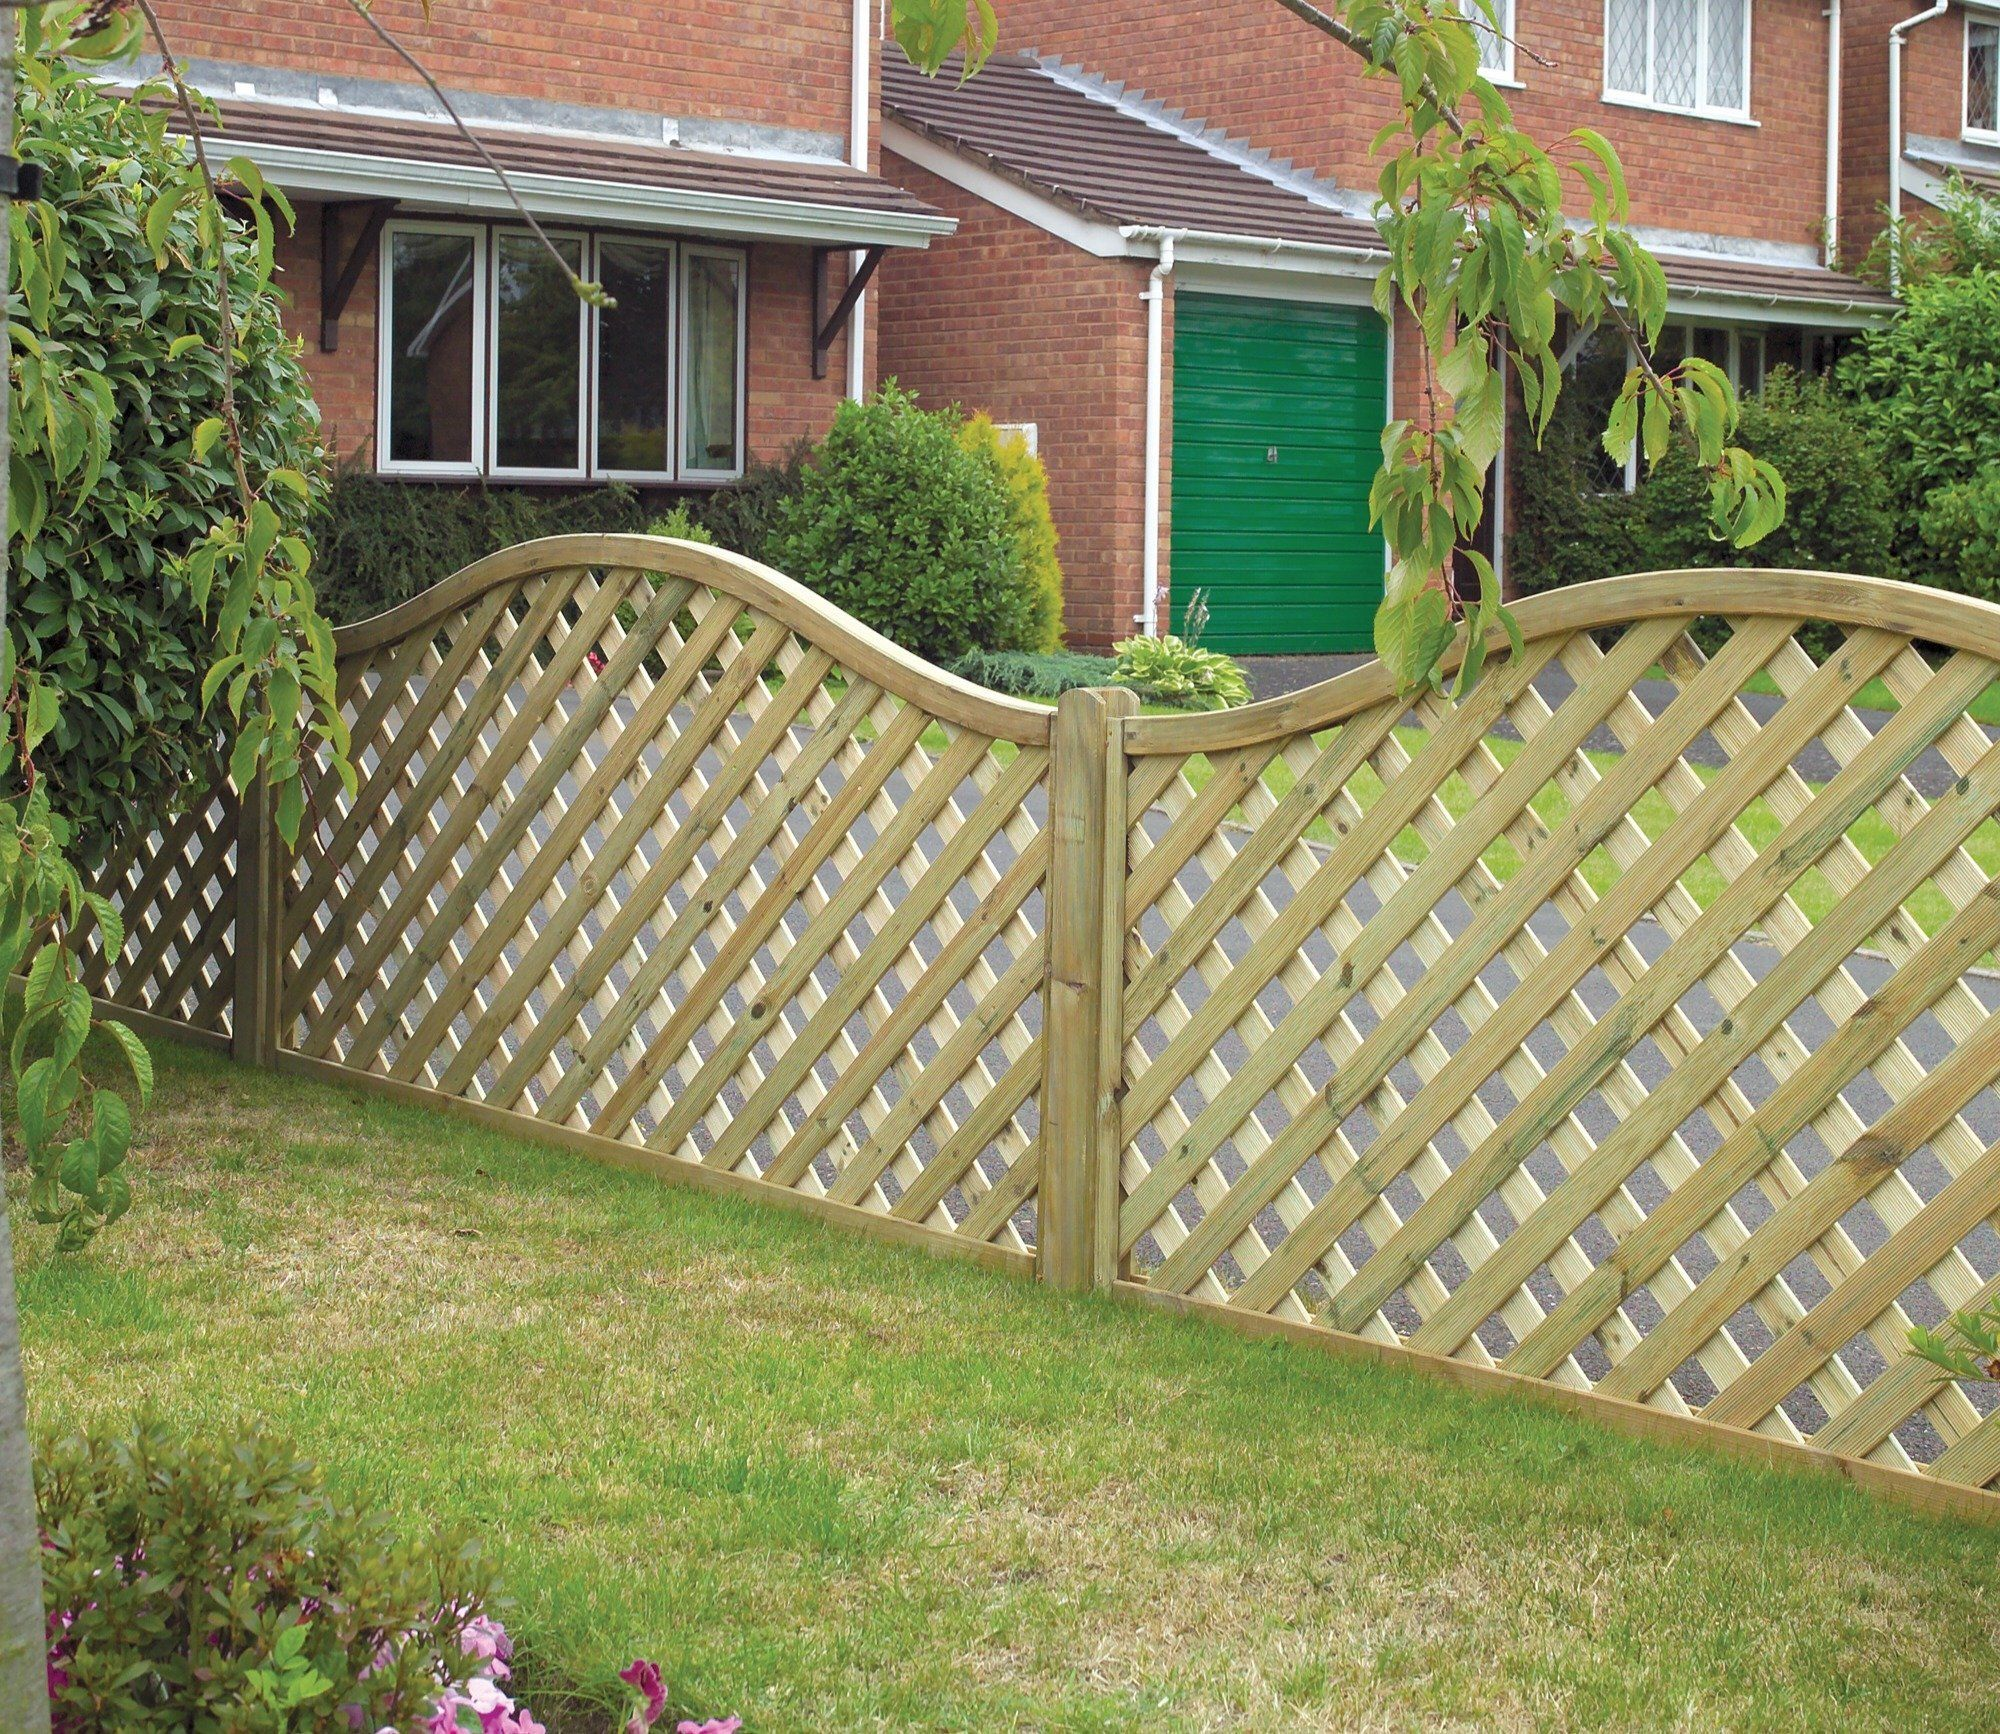 Grange Elite St Meloir 6ft x 3.5ft Trellis Panel | Gates, Fences and ...